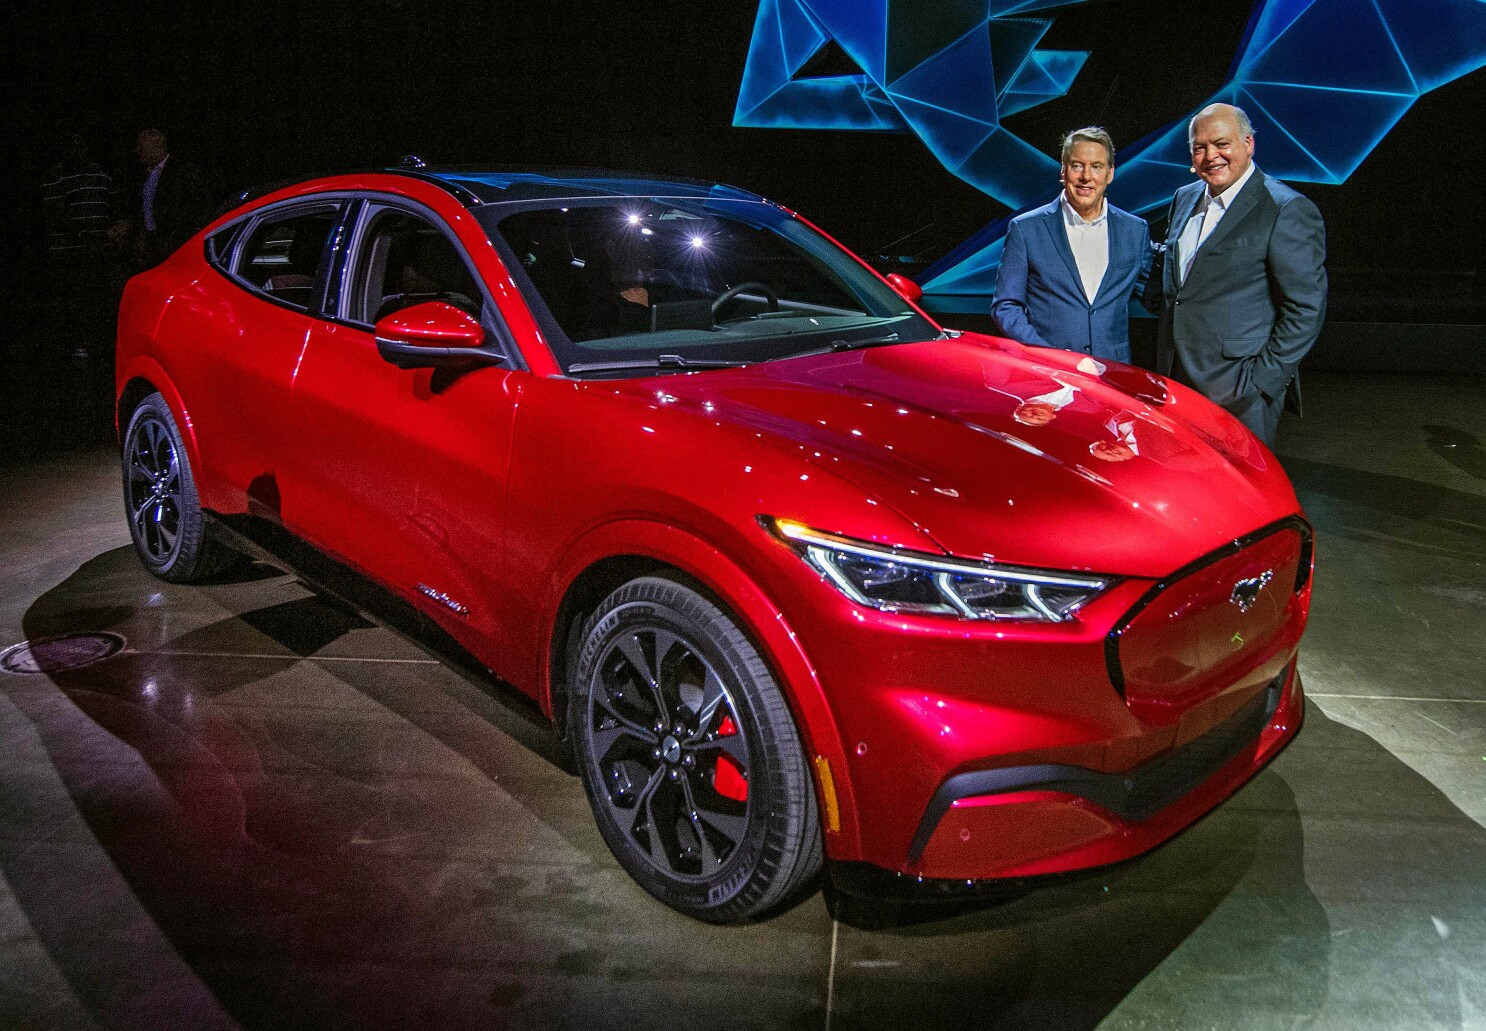 The Electric Mustang Is Just The Start Of Ford S Drive To Hit 50 Mpg In 6 Years Los Angeles Times